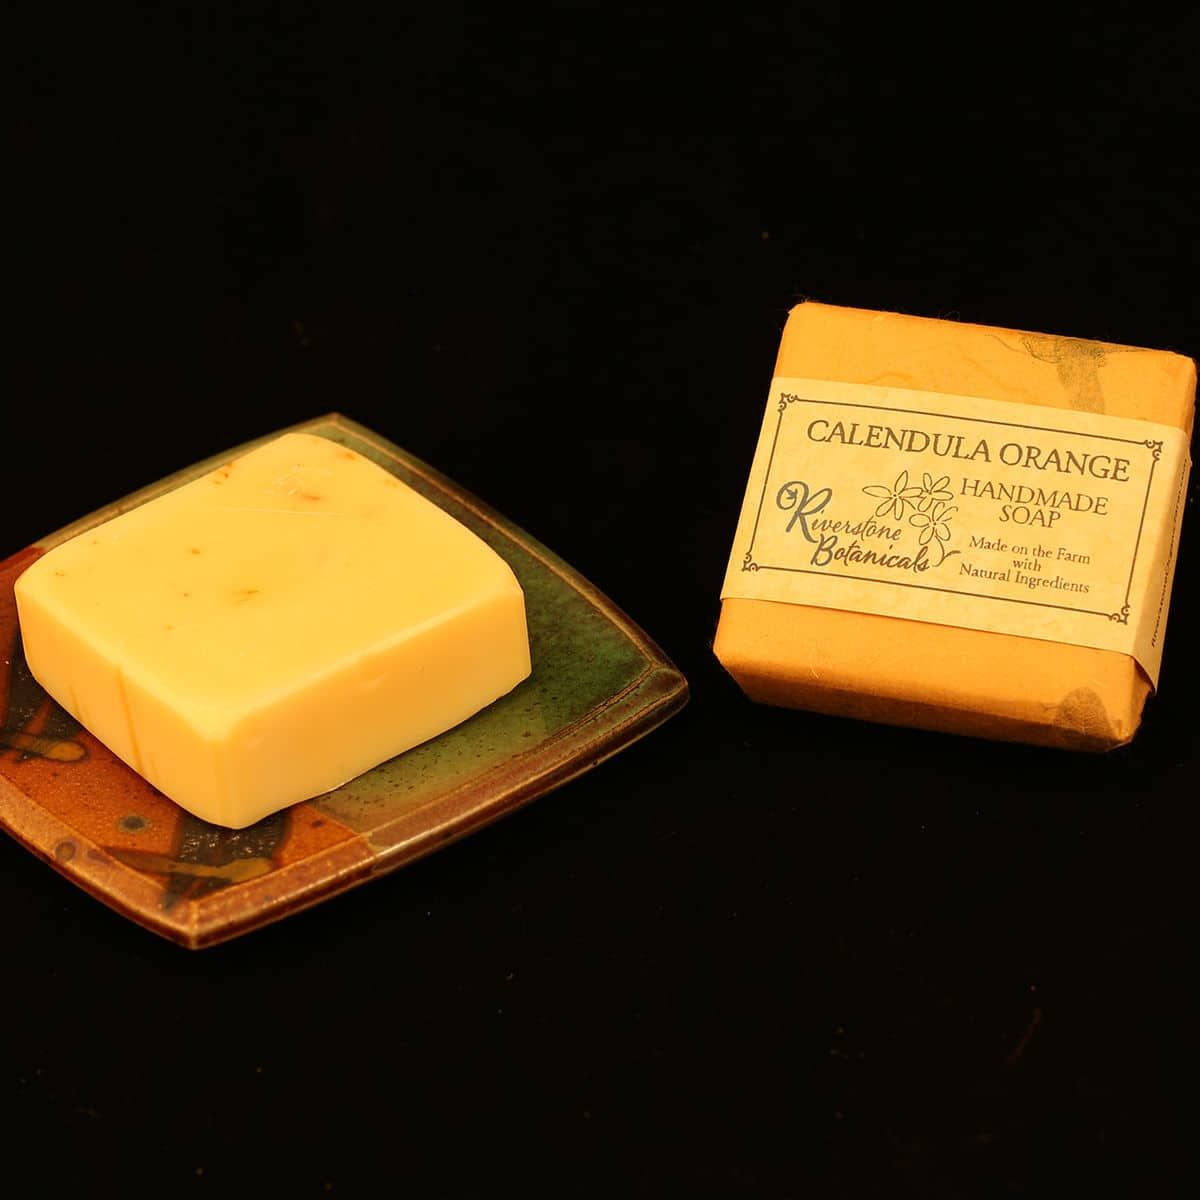 Riverstone Botanicals Calendula Orange Handmade Soap